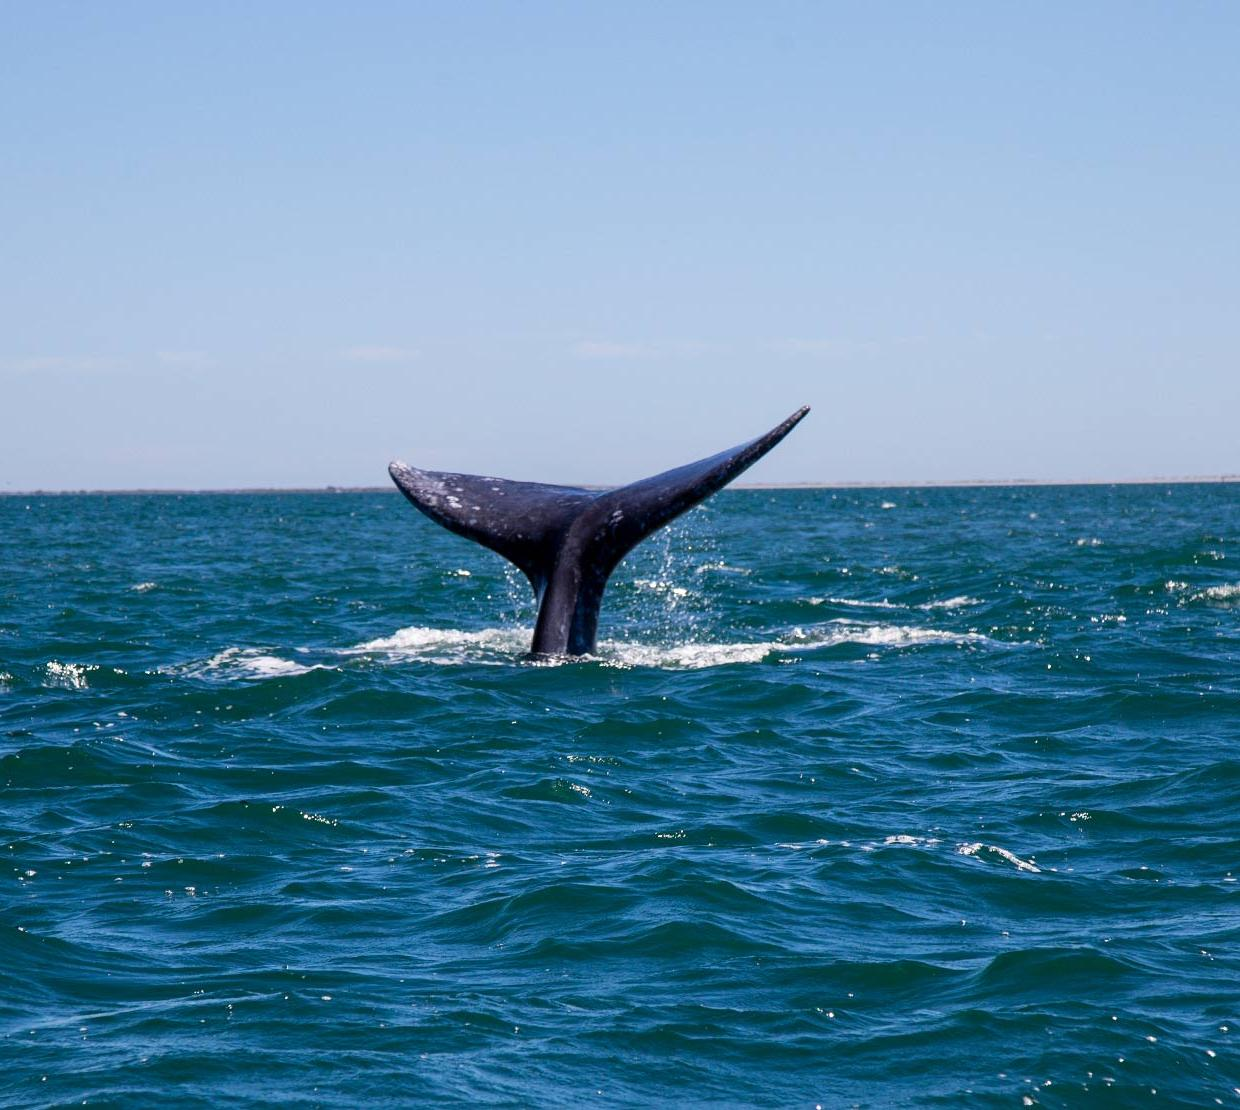 Blue whale tail peering out of ocean surface